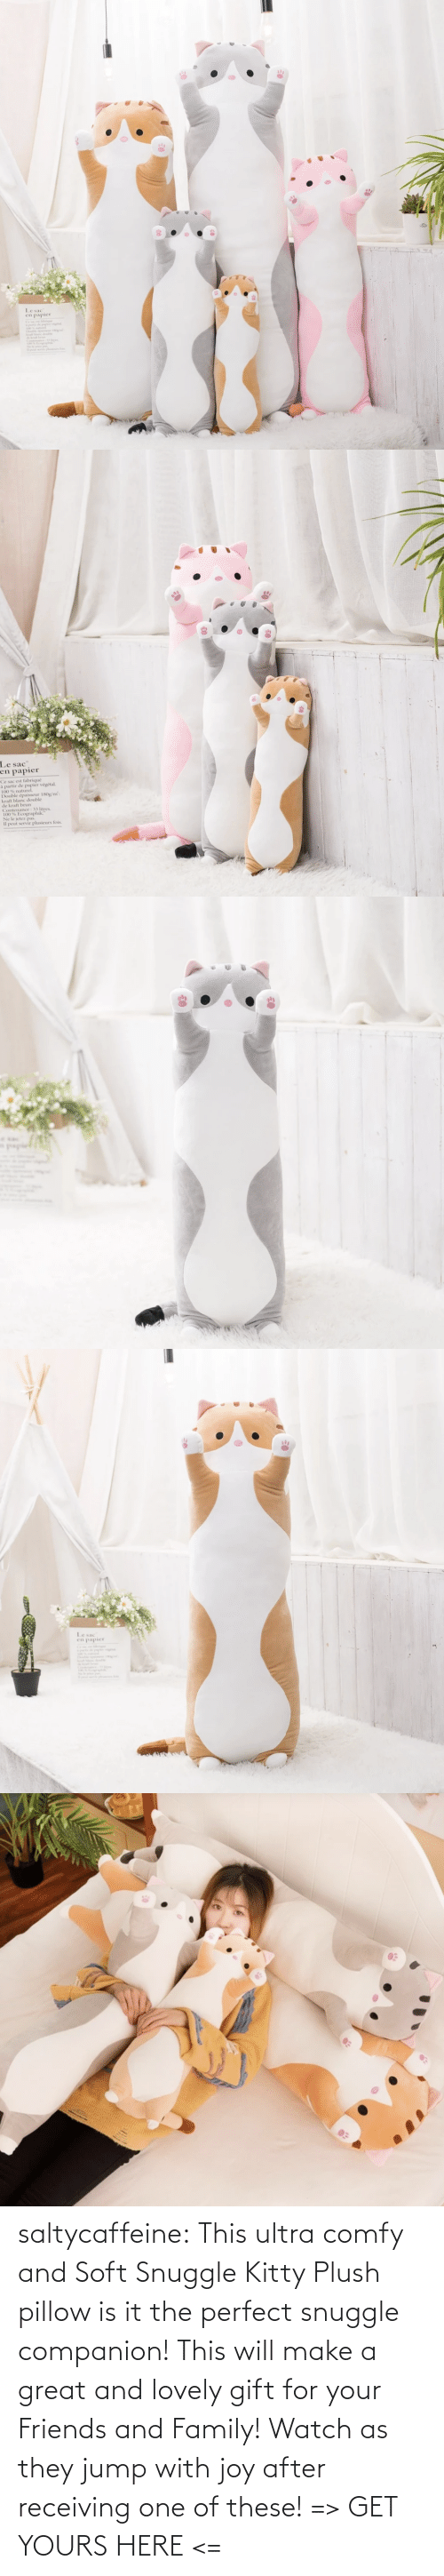 One Of These: saltycaffeine: This ultra comfy and Soft Snuggle Kitty Plush pillow is it the perfect snuggle companion! This will make a great and lovely gift for your Friends and Family! Watch as they jump with joy after receiving one of these! => GET YOURS HERE <=